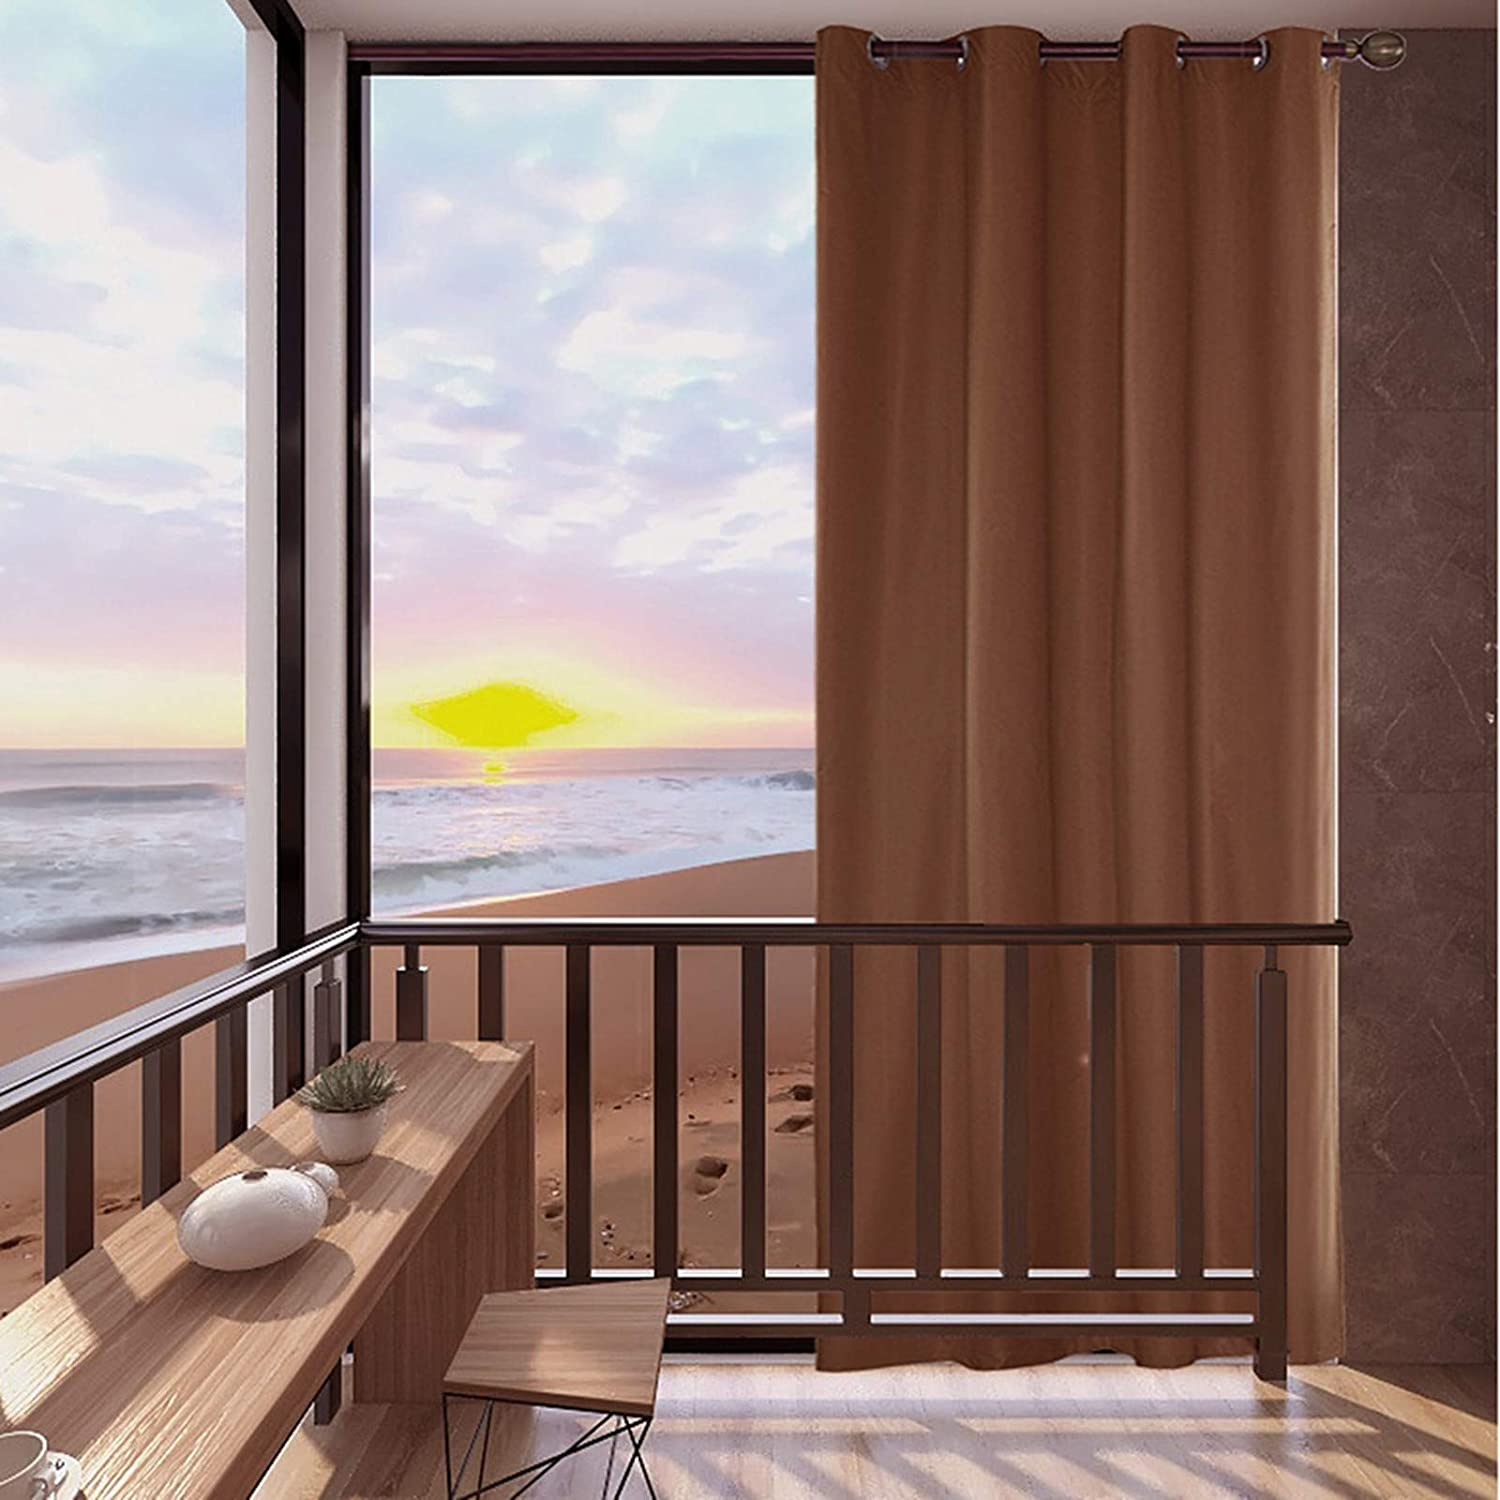 """Mingfuxin Outdoor Curtains, 1 Panels Garden Patio Gazebo Sunscreen Blackout Curtains, Waterproof & Thermal Insulated Curtains with Grommet for Porch Cabana Dock 54"""" x 84""""   1 Panel Coffee"""